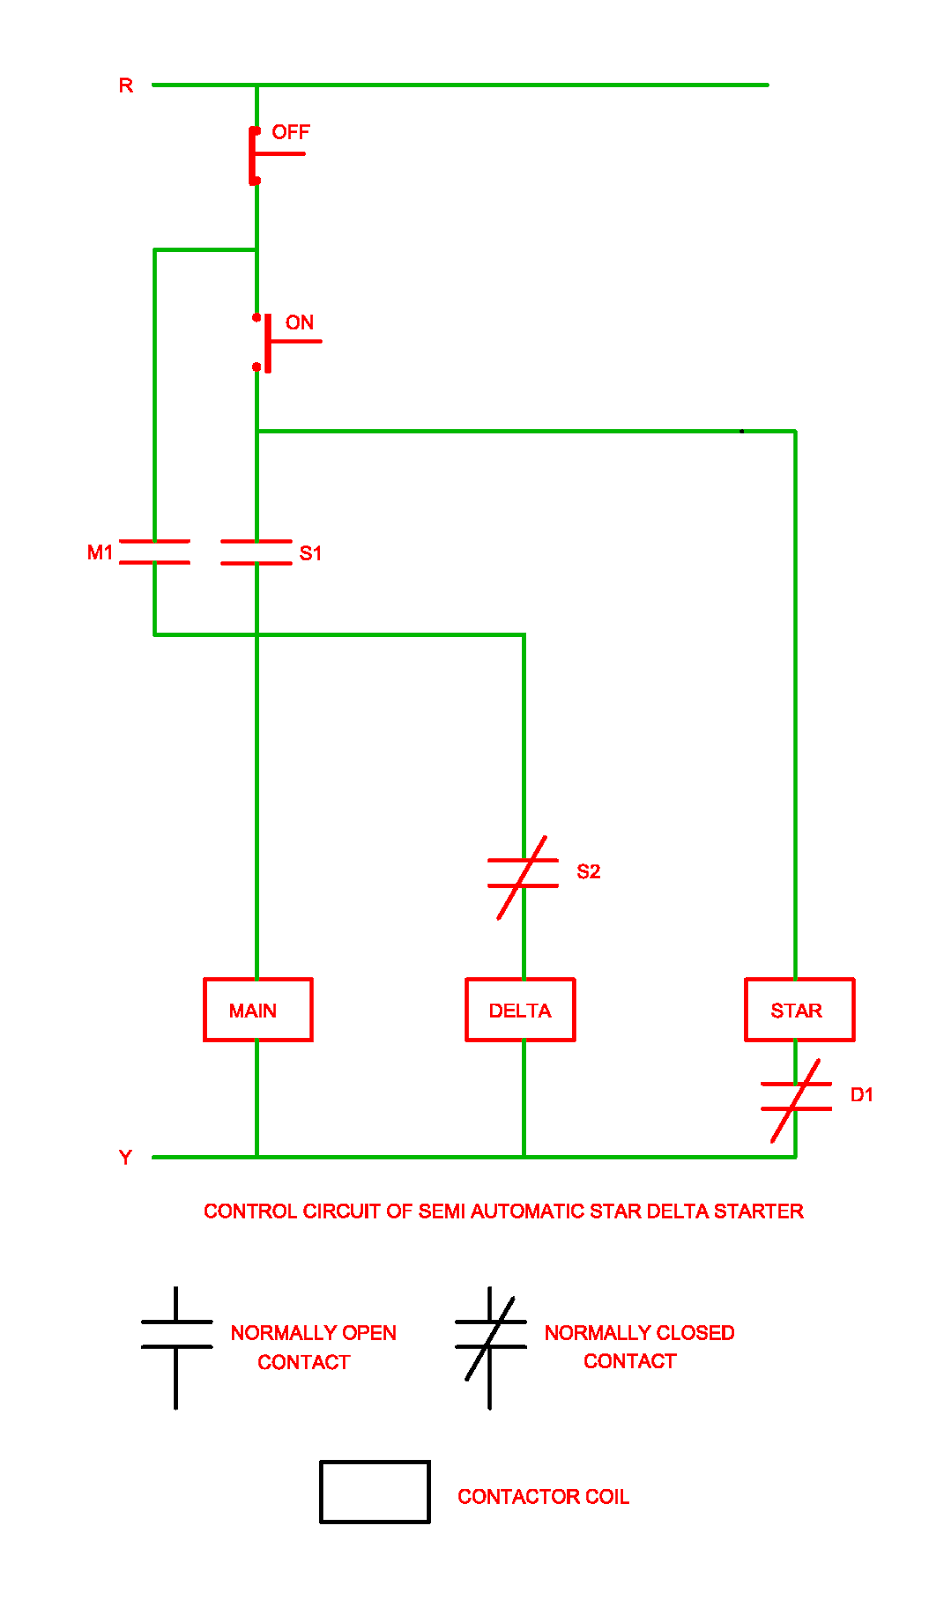 Control Circuit Of Semi Automatic Star Delta Starter